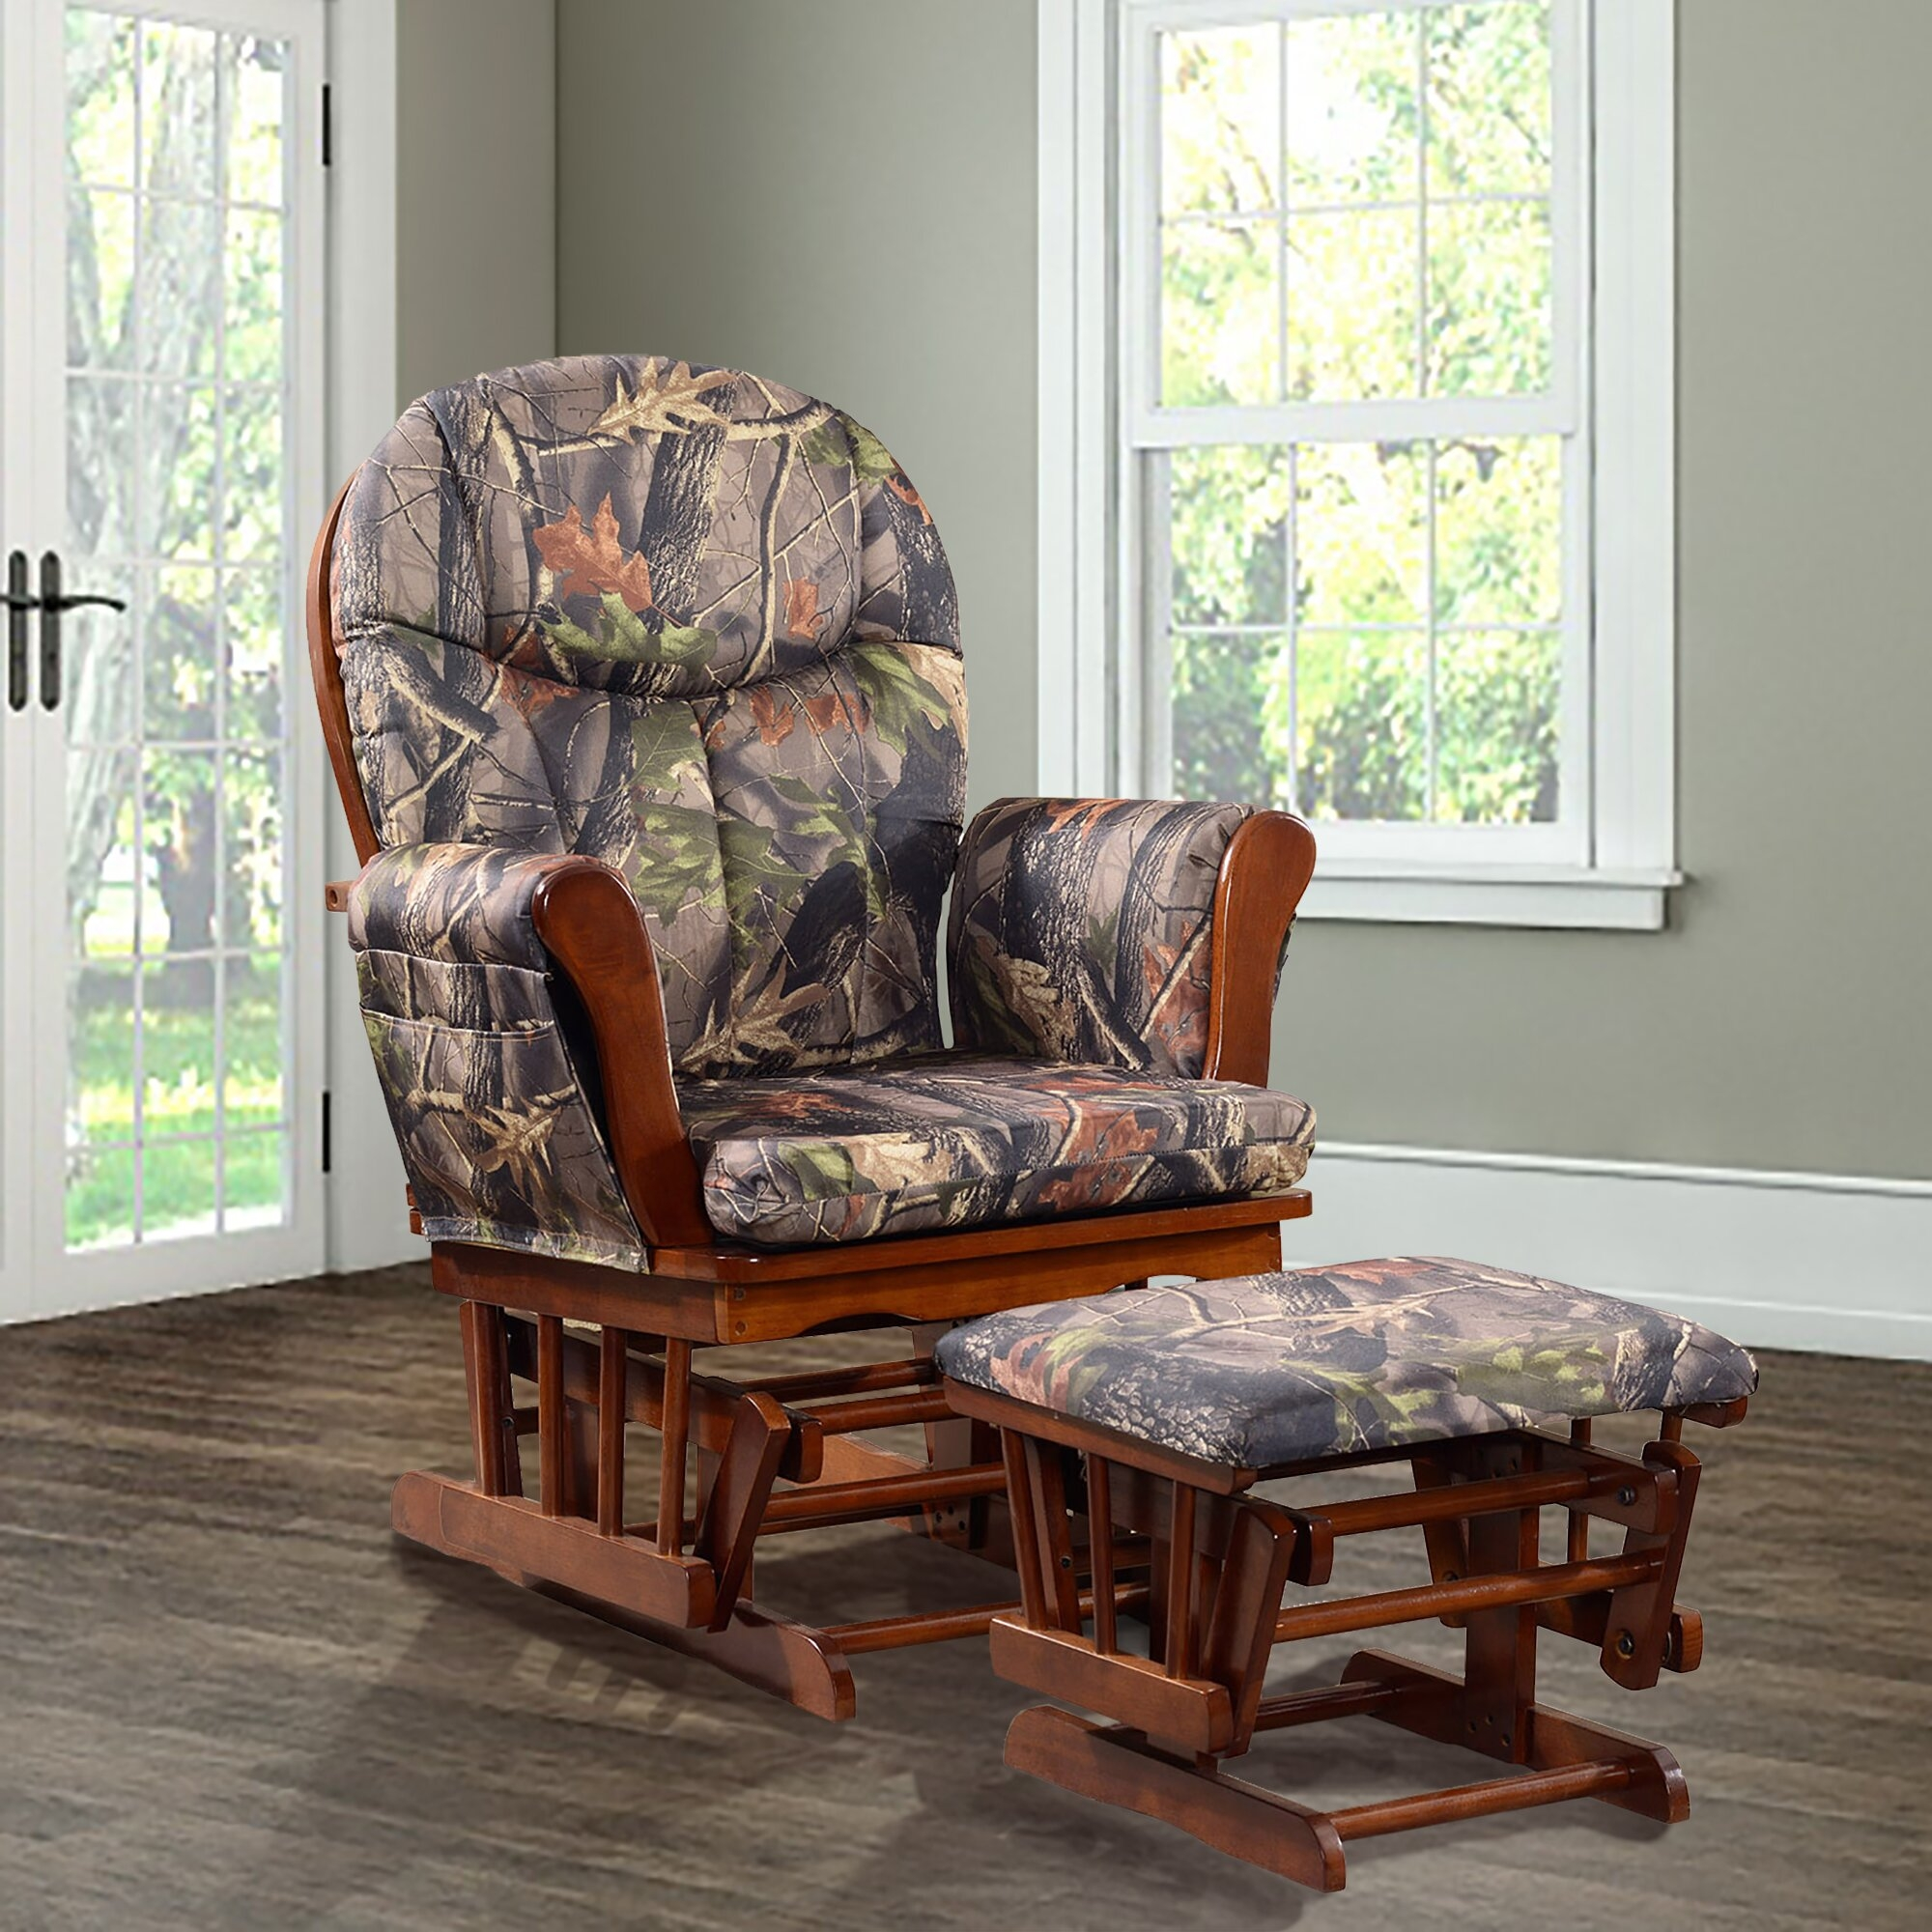 Artiva USA Home Deluxe Camouflage Microfiber Cushion Cherry Wood Glider  Chair And Ottoman Set